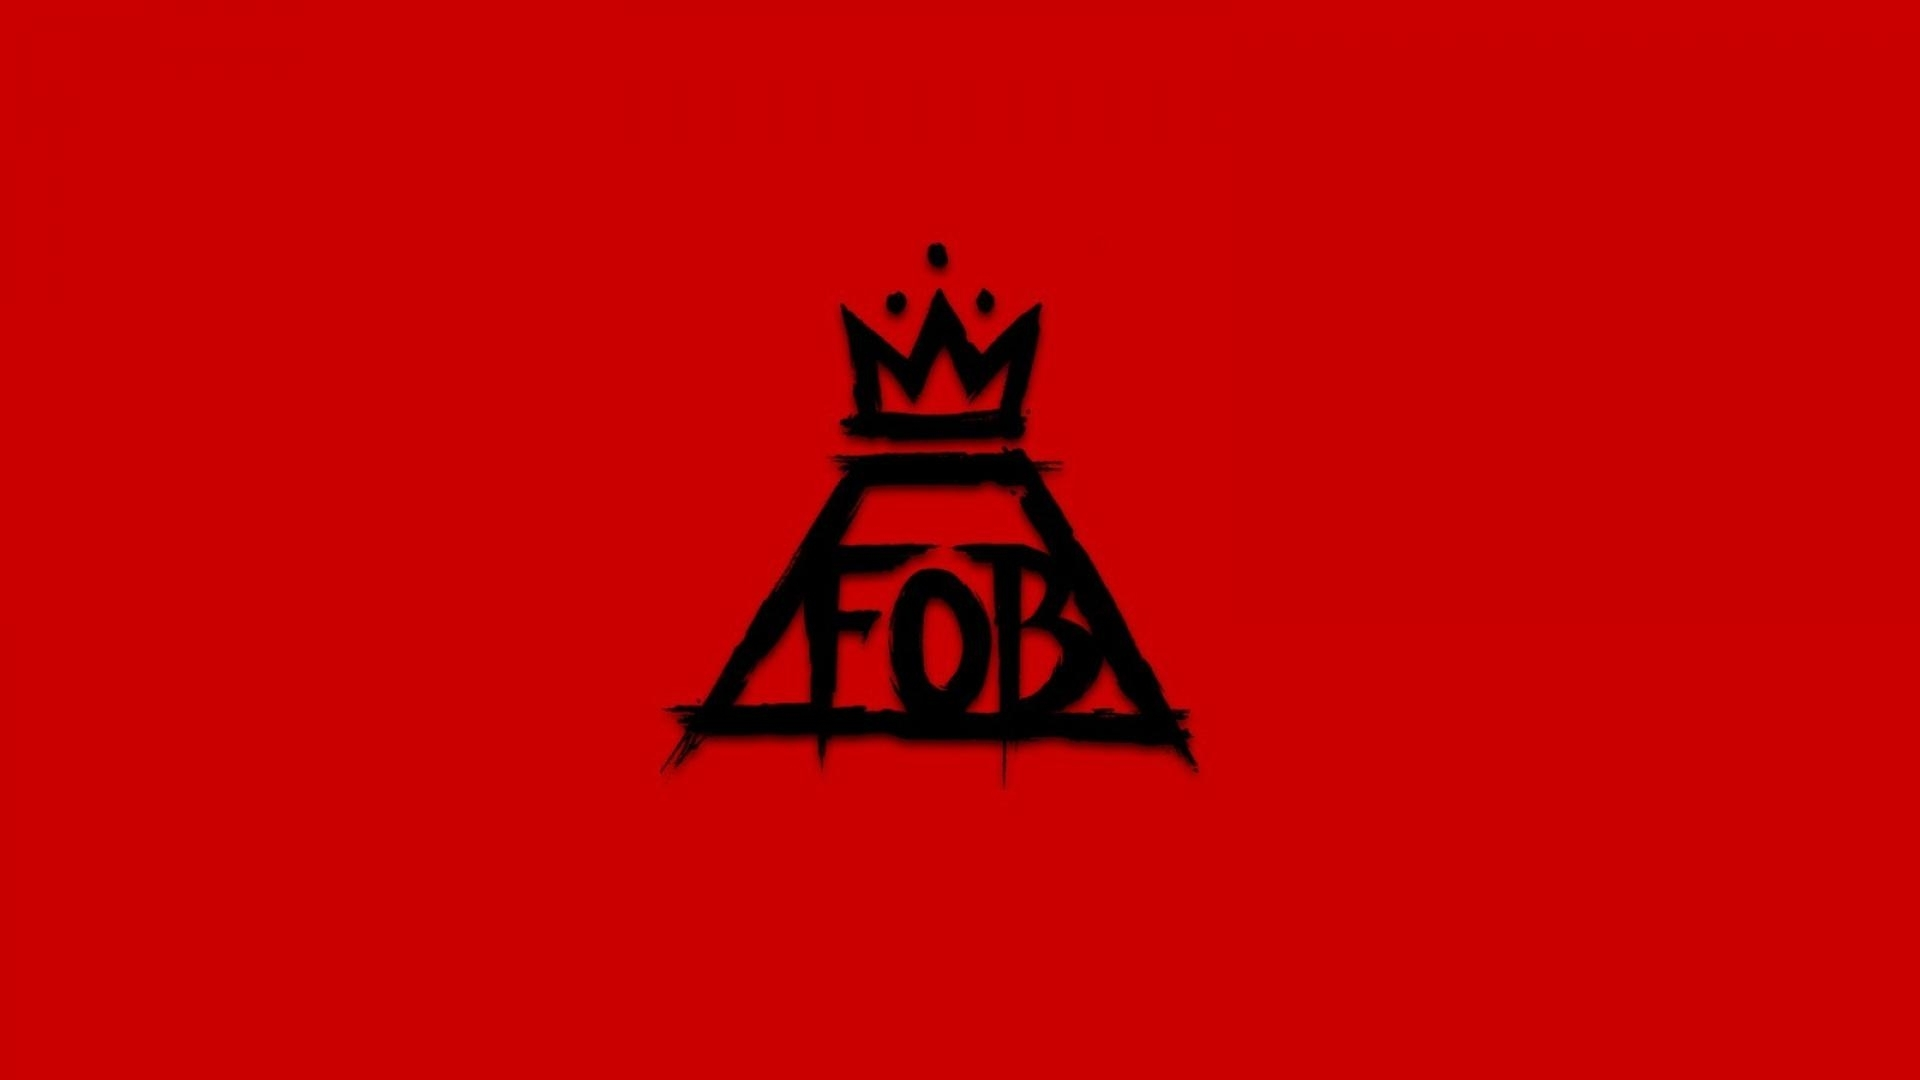 fall out boy red wallpaper | (89841)